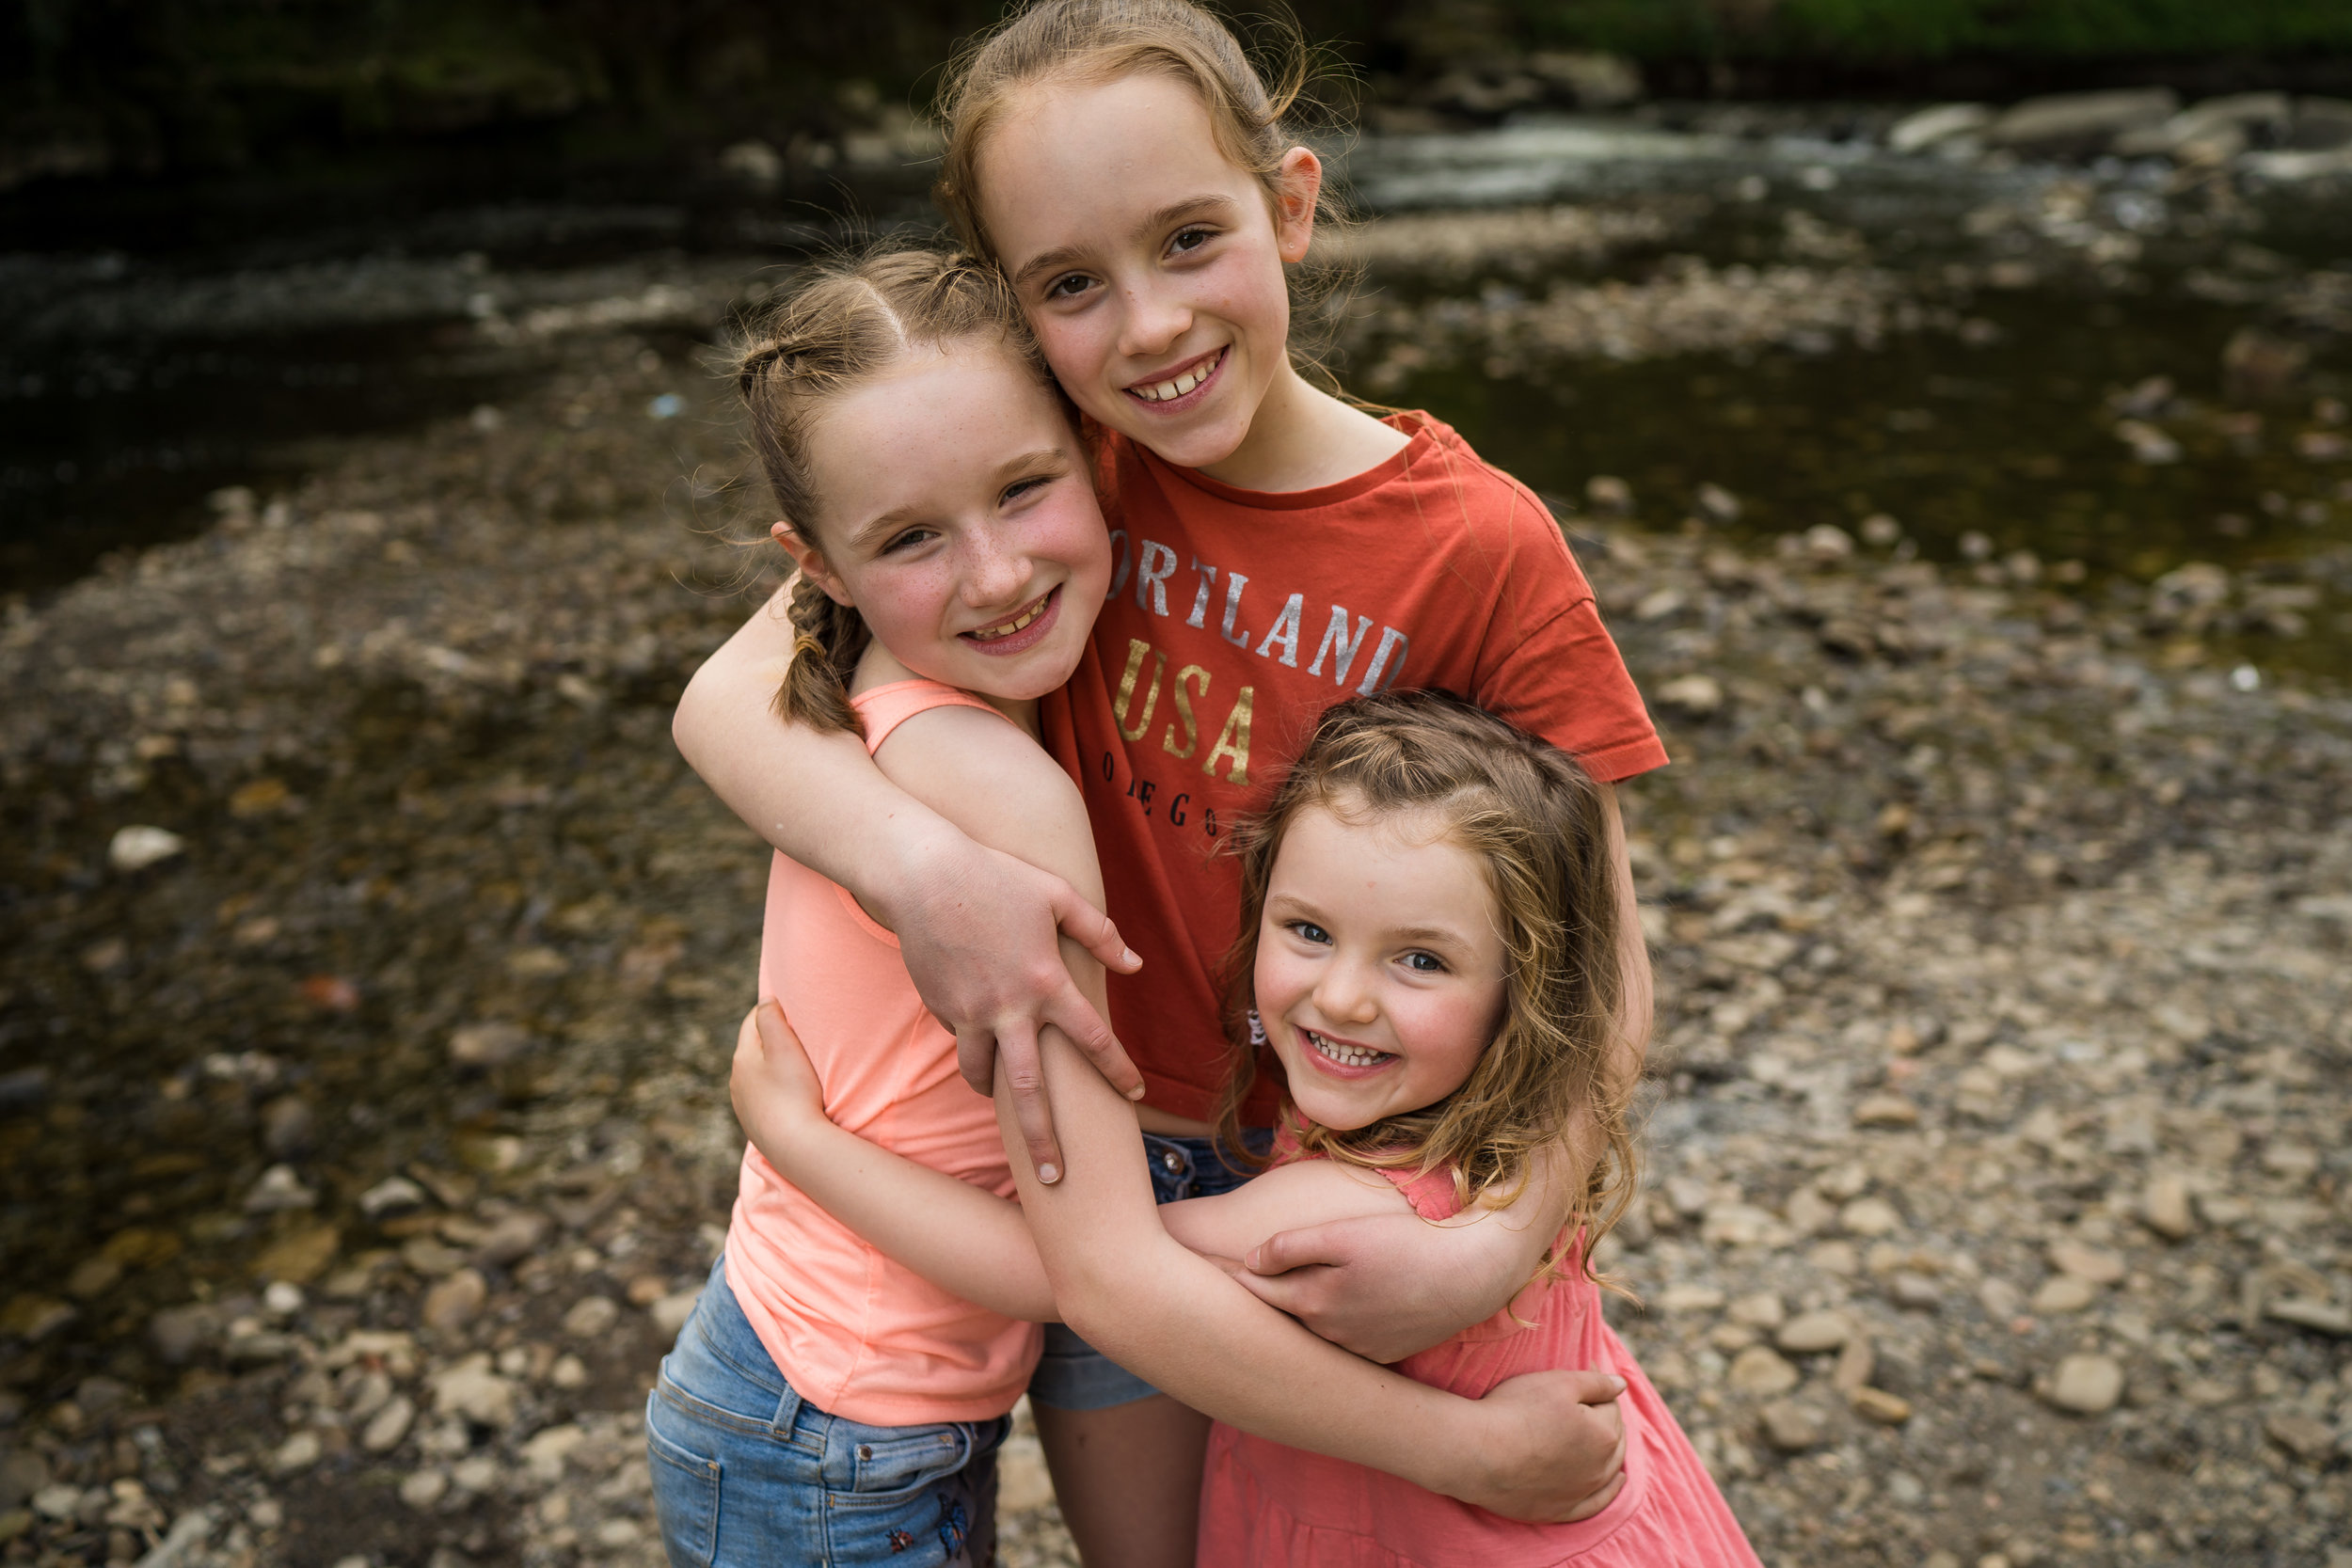 burrs country park family 2490.jpg